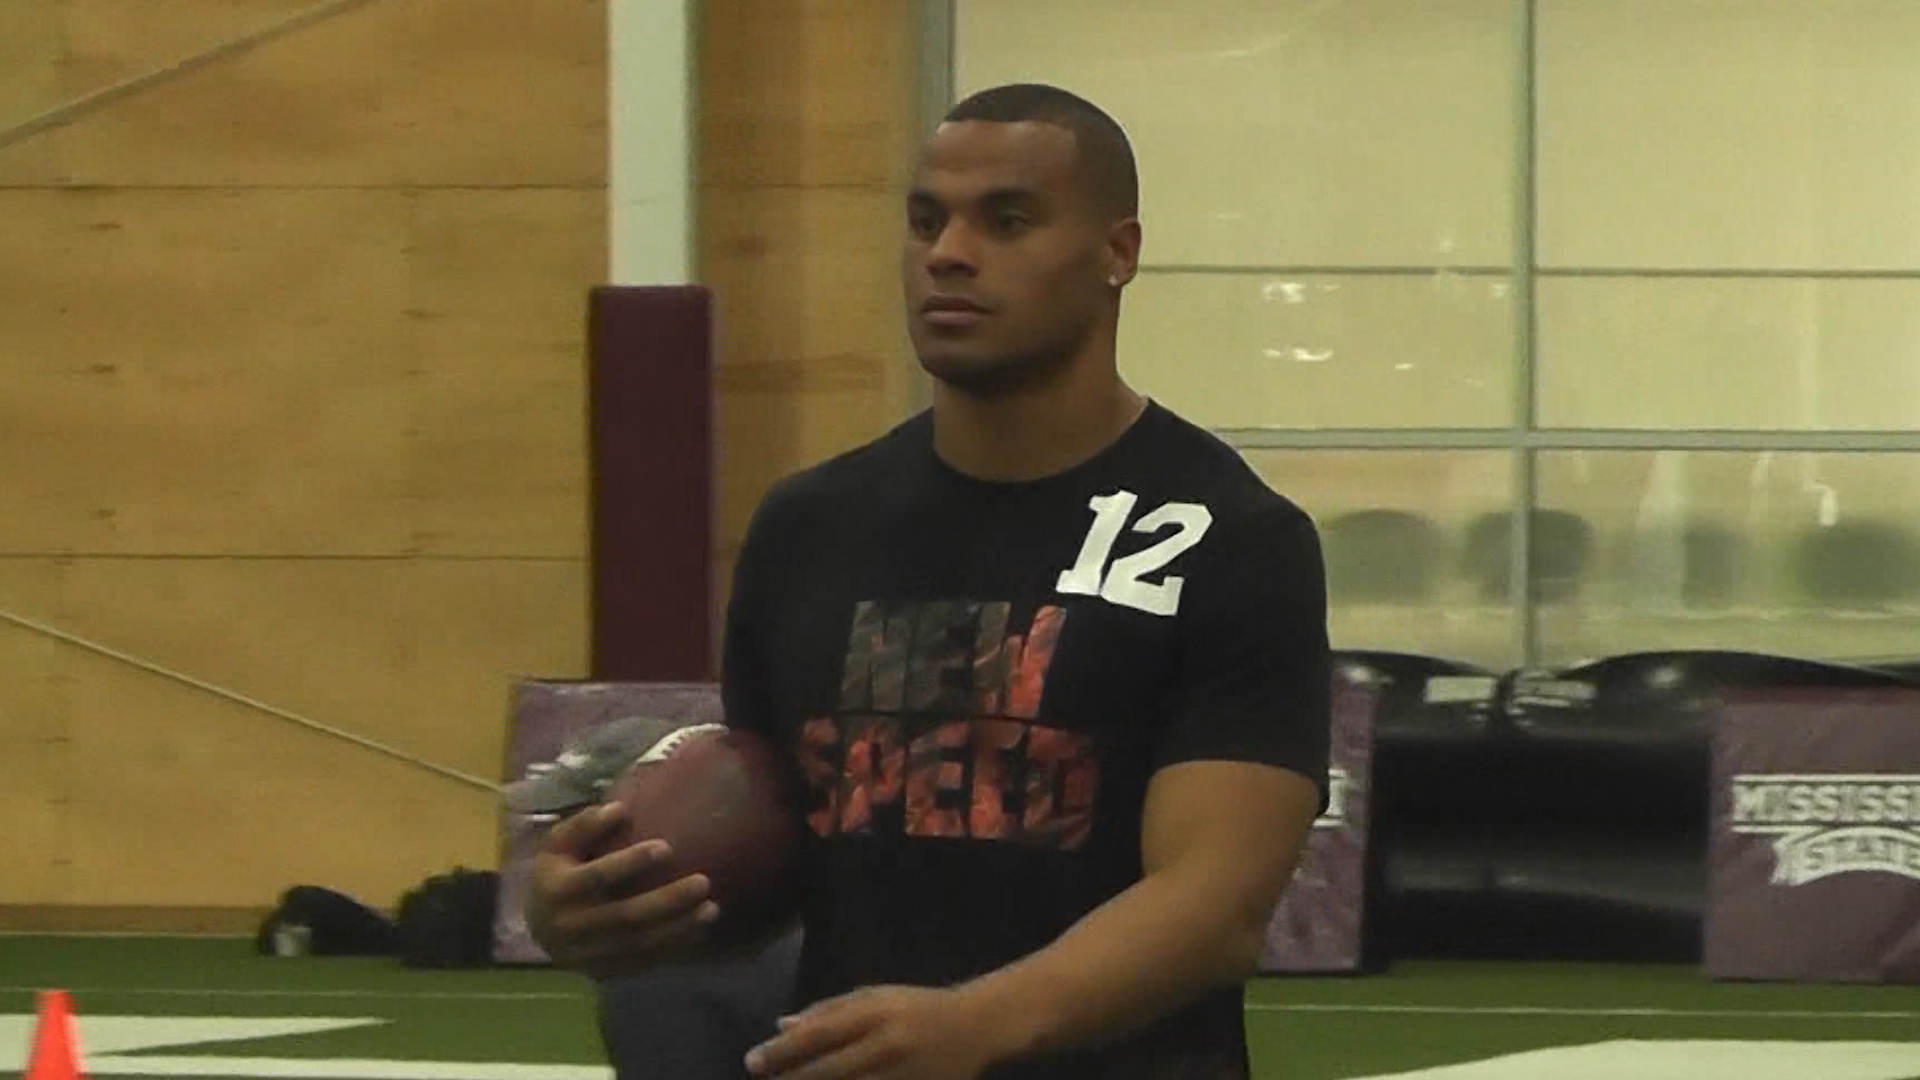 dak prescott hoping dui arrest wont tarnish him